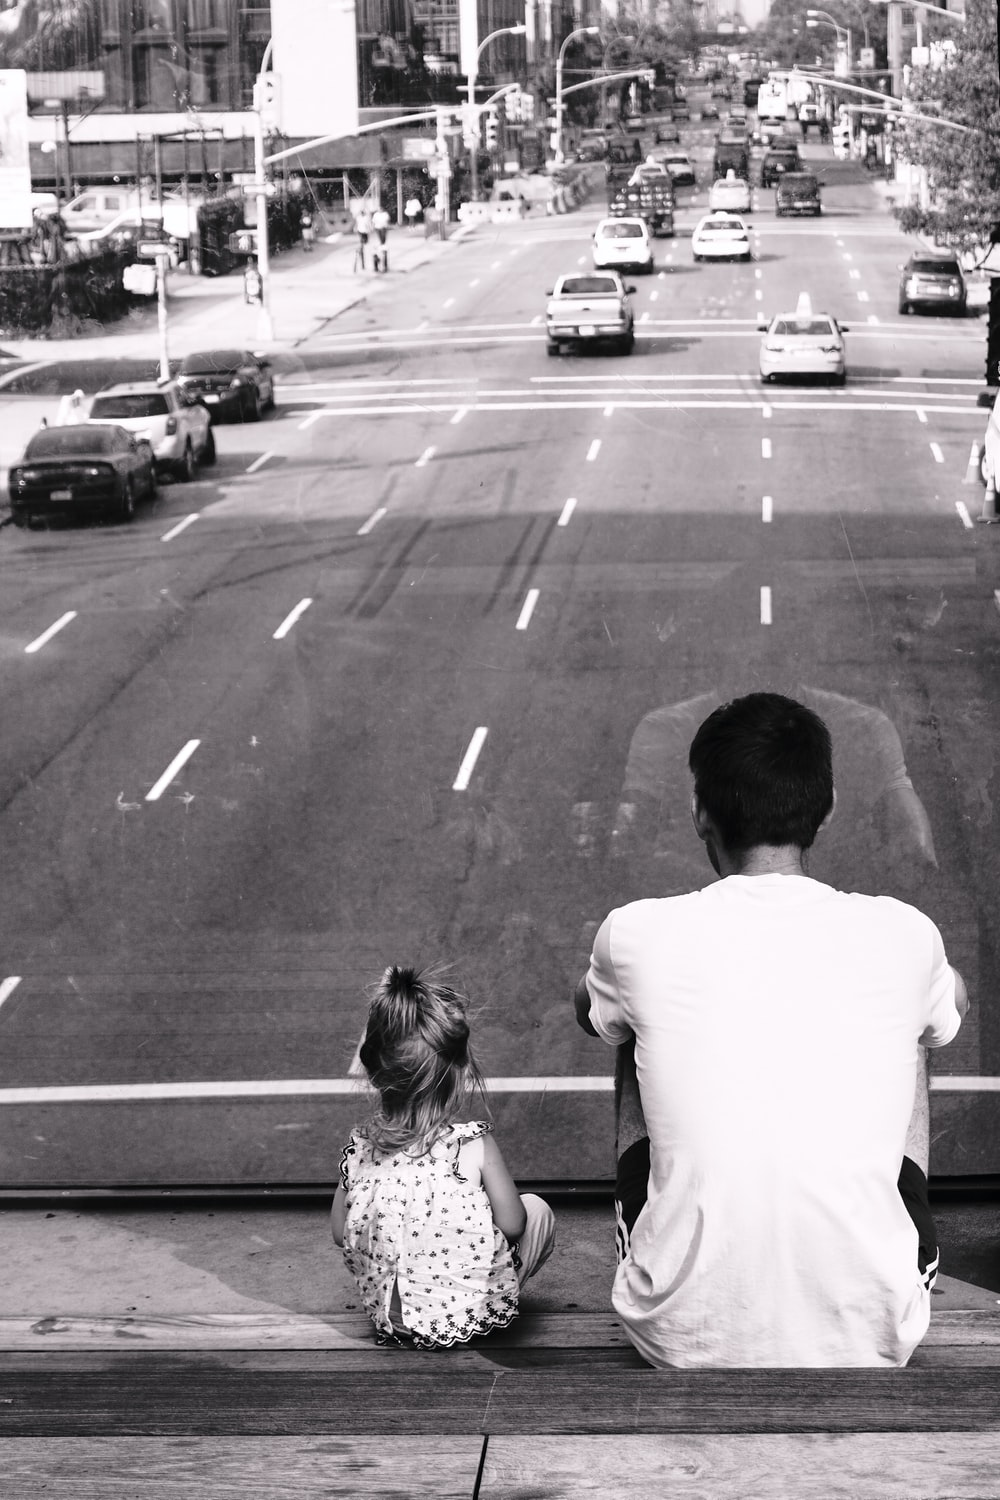 grayscale photography of man and girl sitting on staircase fronting road with passing cars